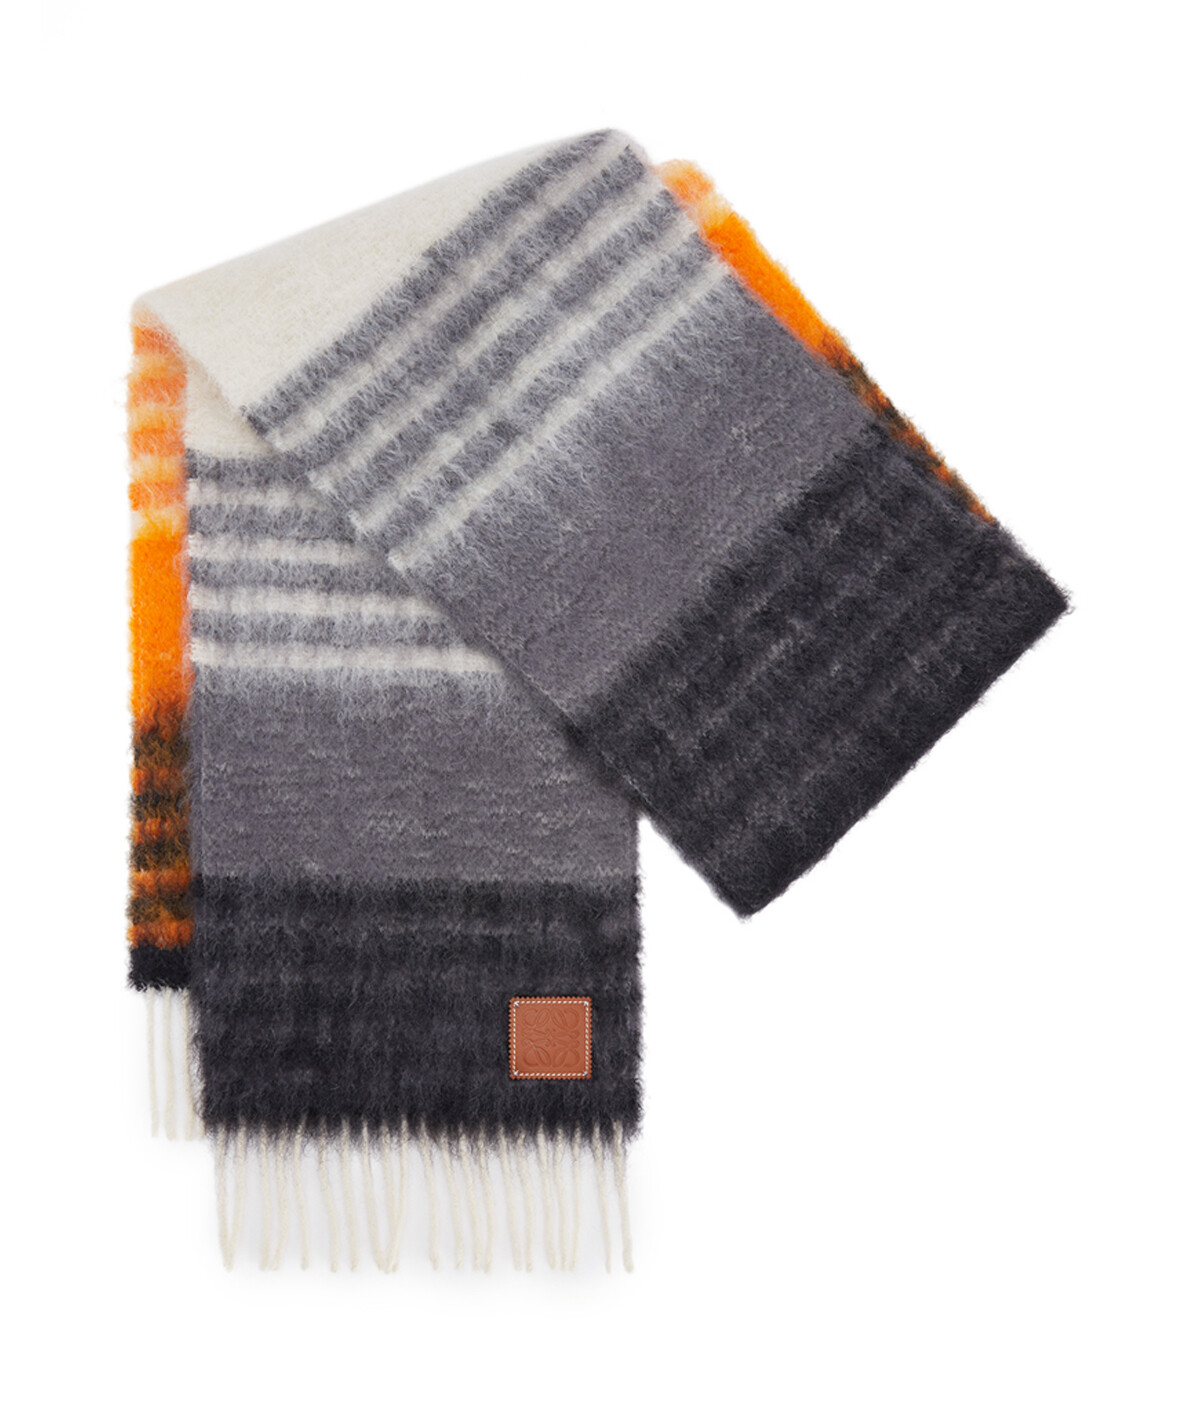 LOEWE 28X185 Mohair Scarf Stripes multicolour/orange front